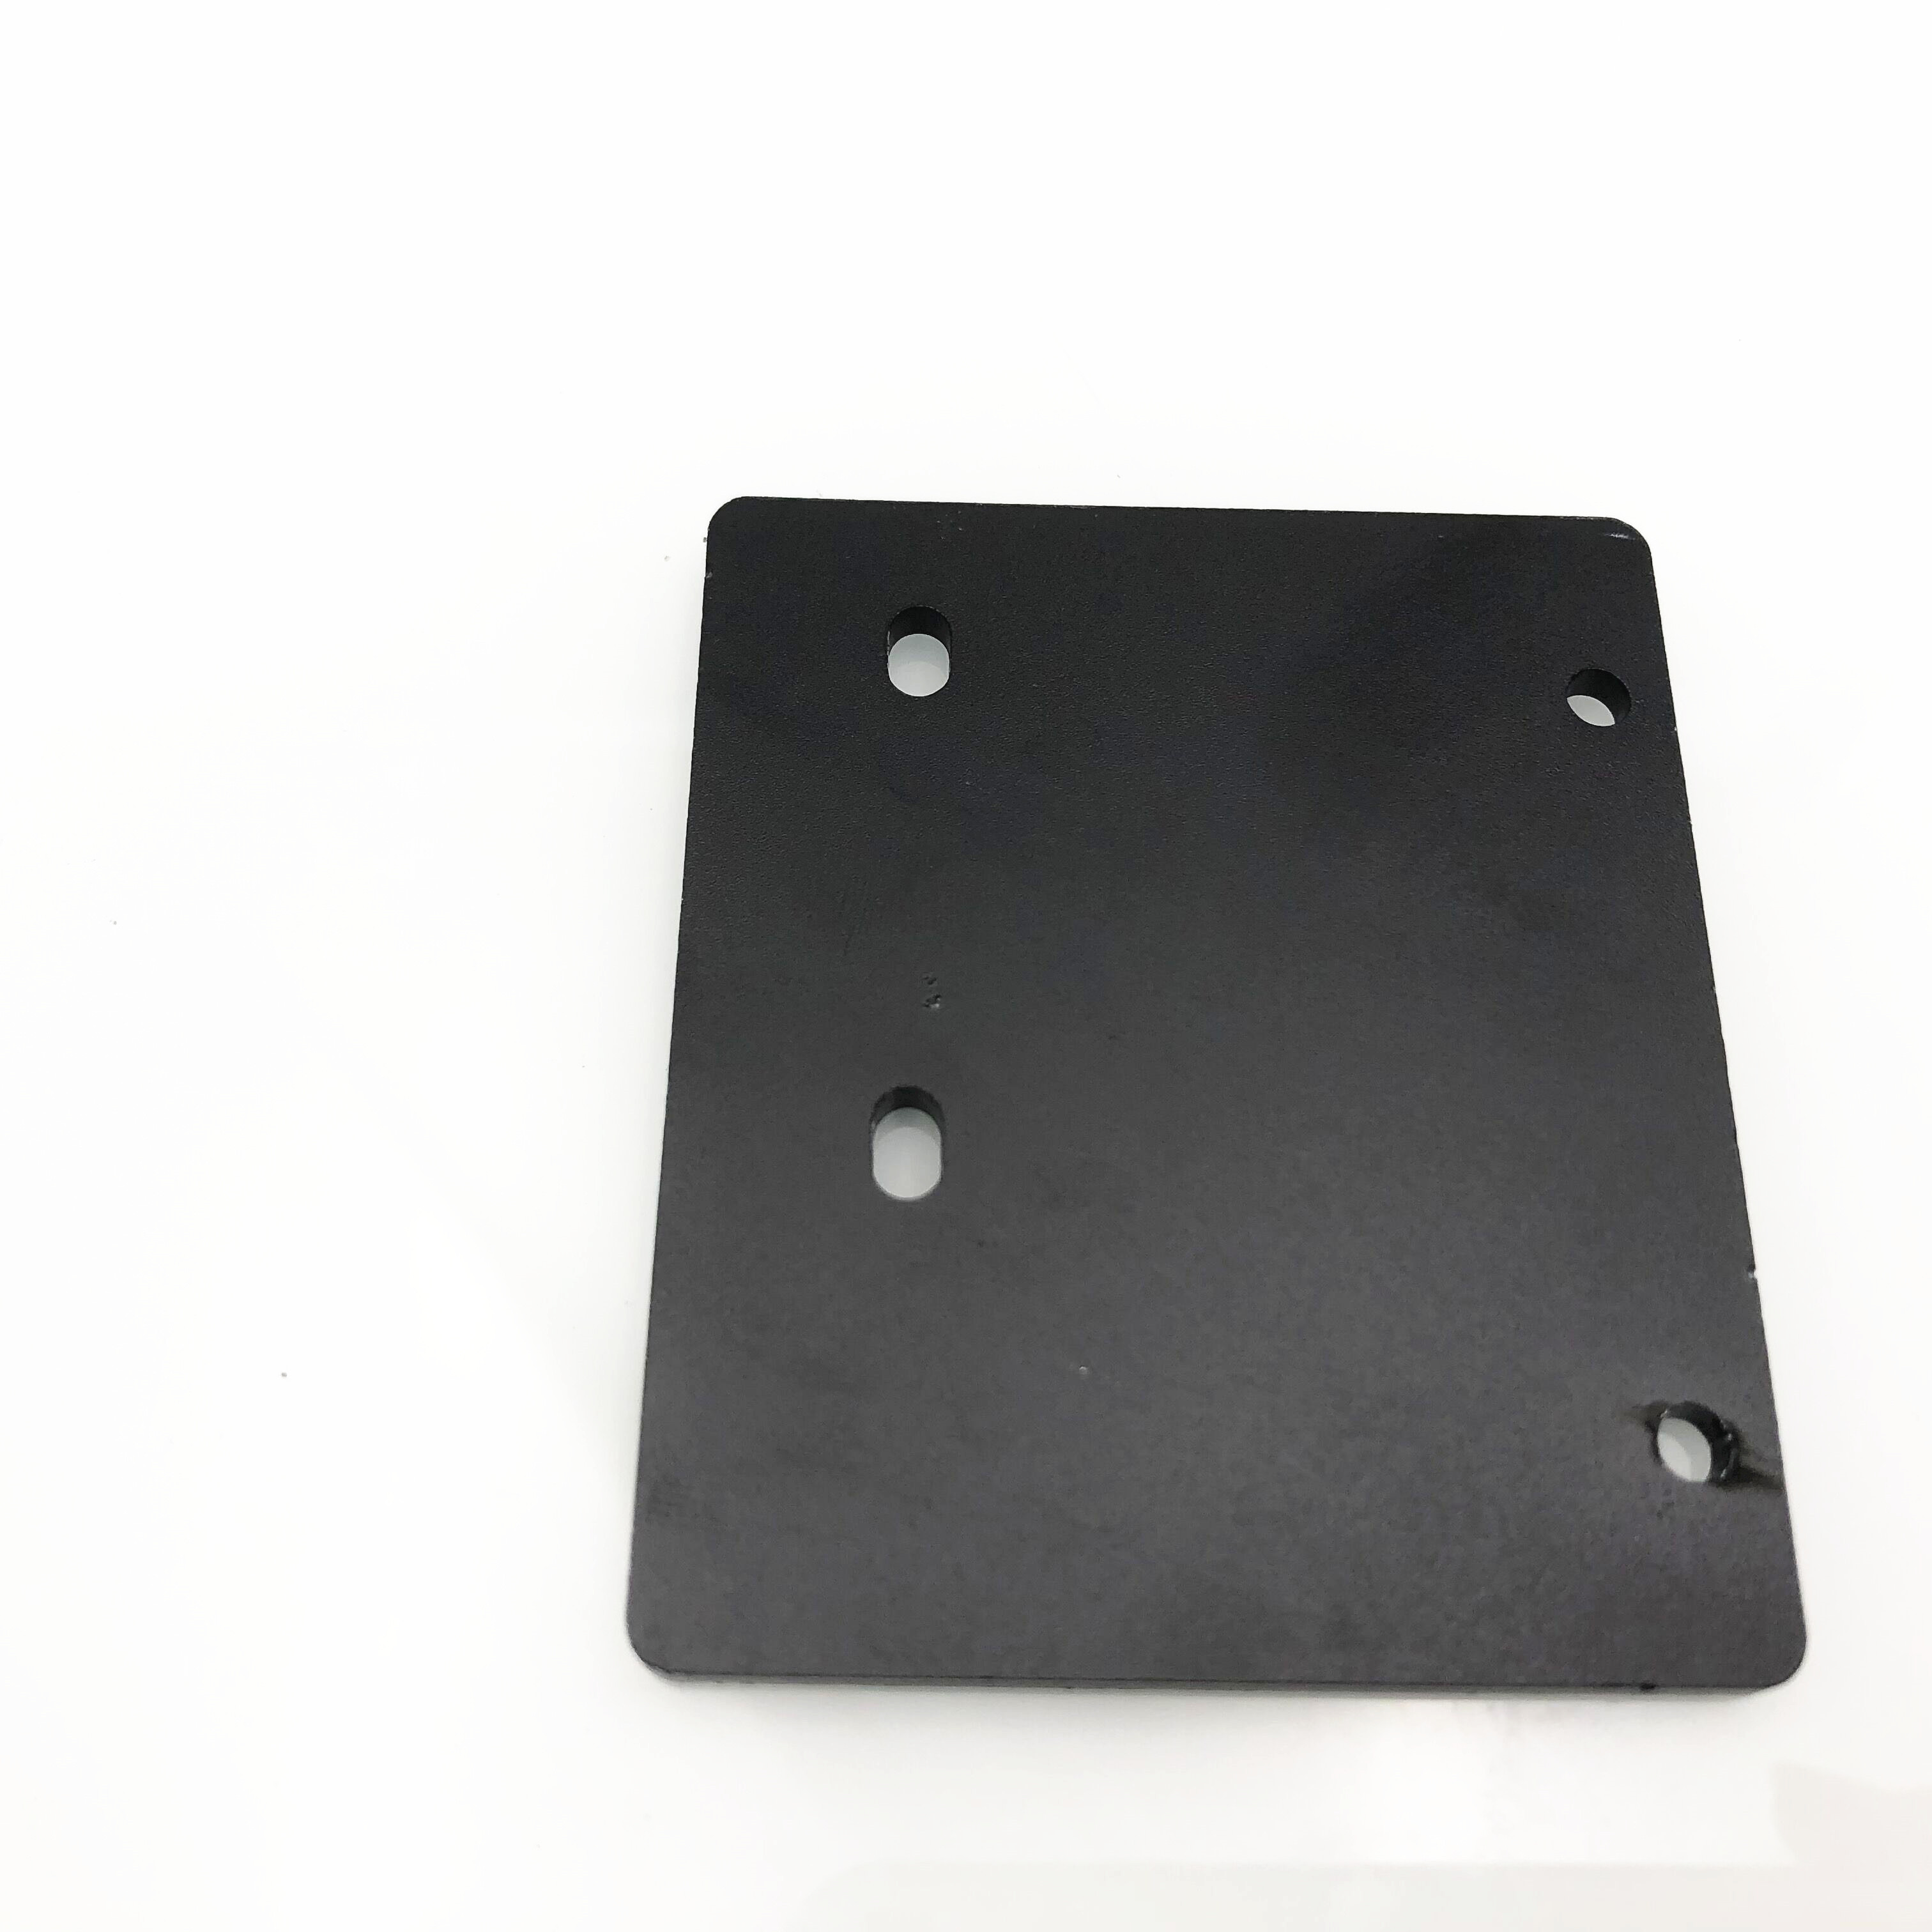 Funssor 1pcs Black color direct drive upgrade plate 3MM thickness for <font><b>Creality</b></font> <font><b>CR10</b></font> <font><b>Pro</b></font> 3D printer image